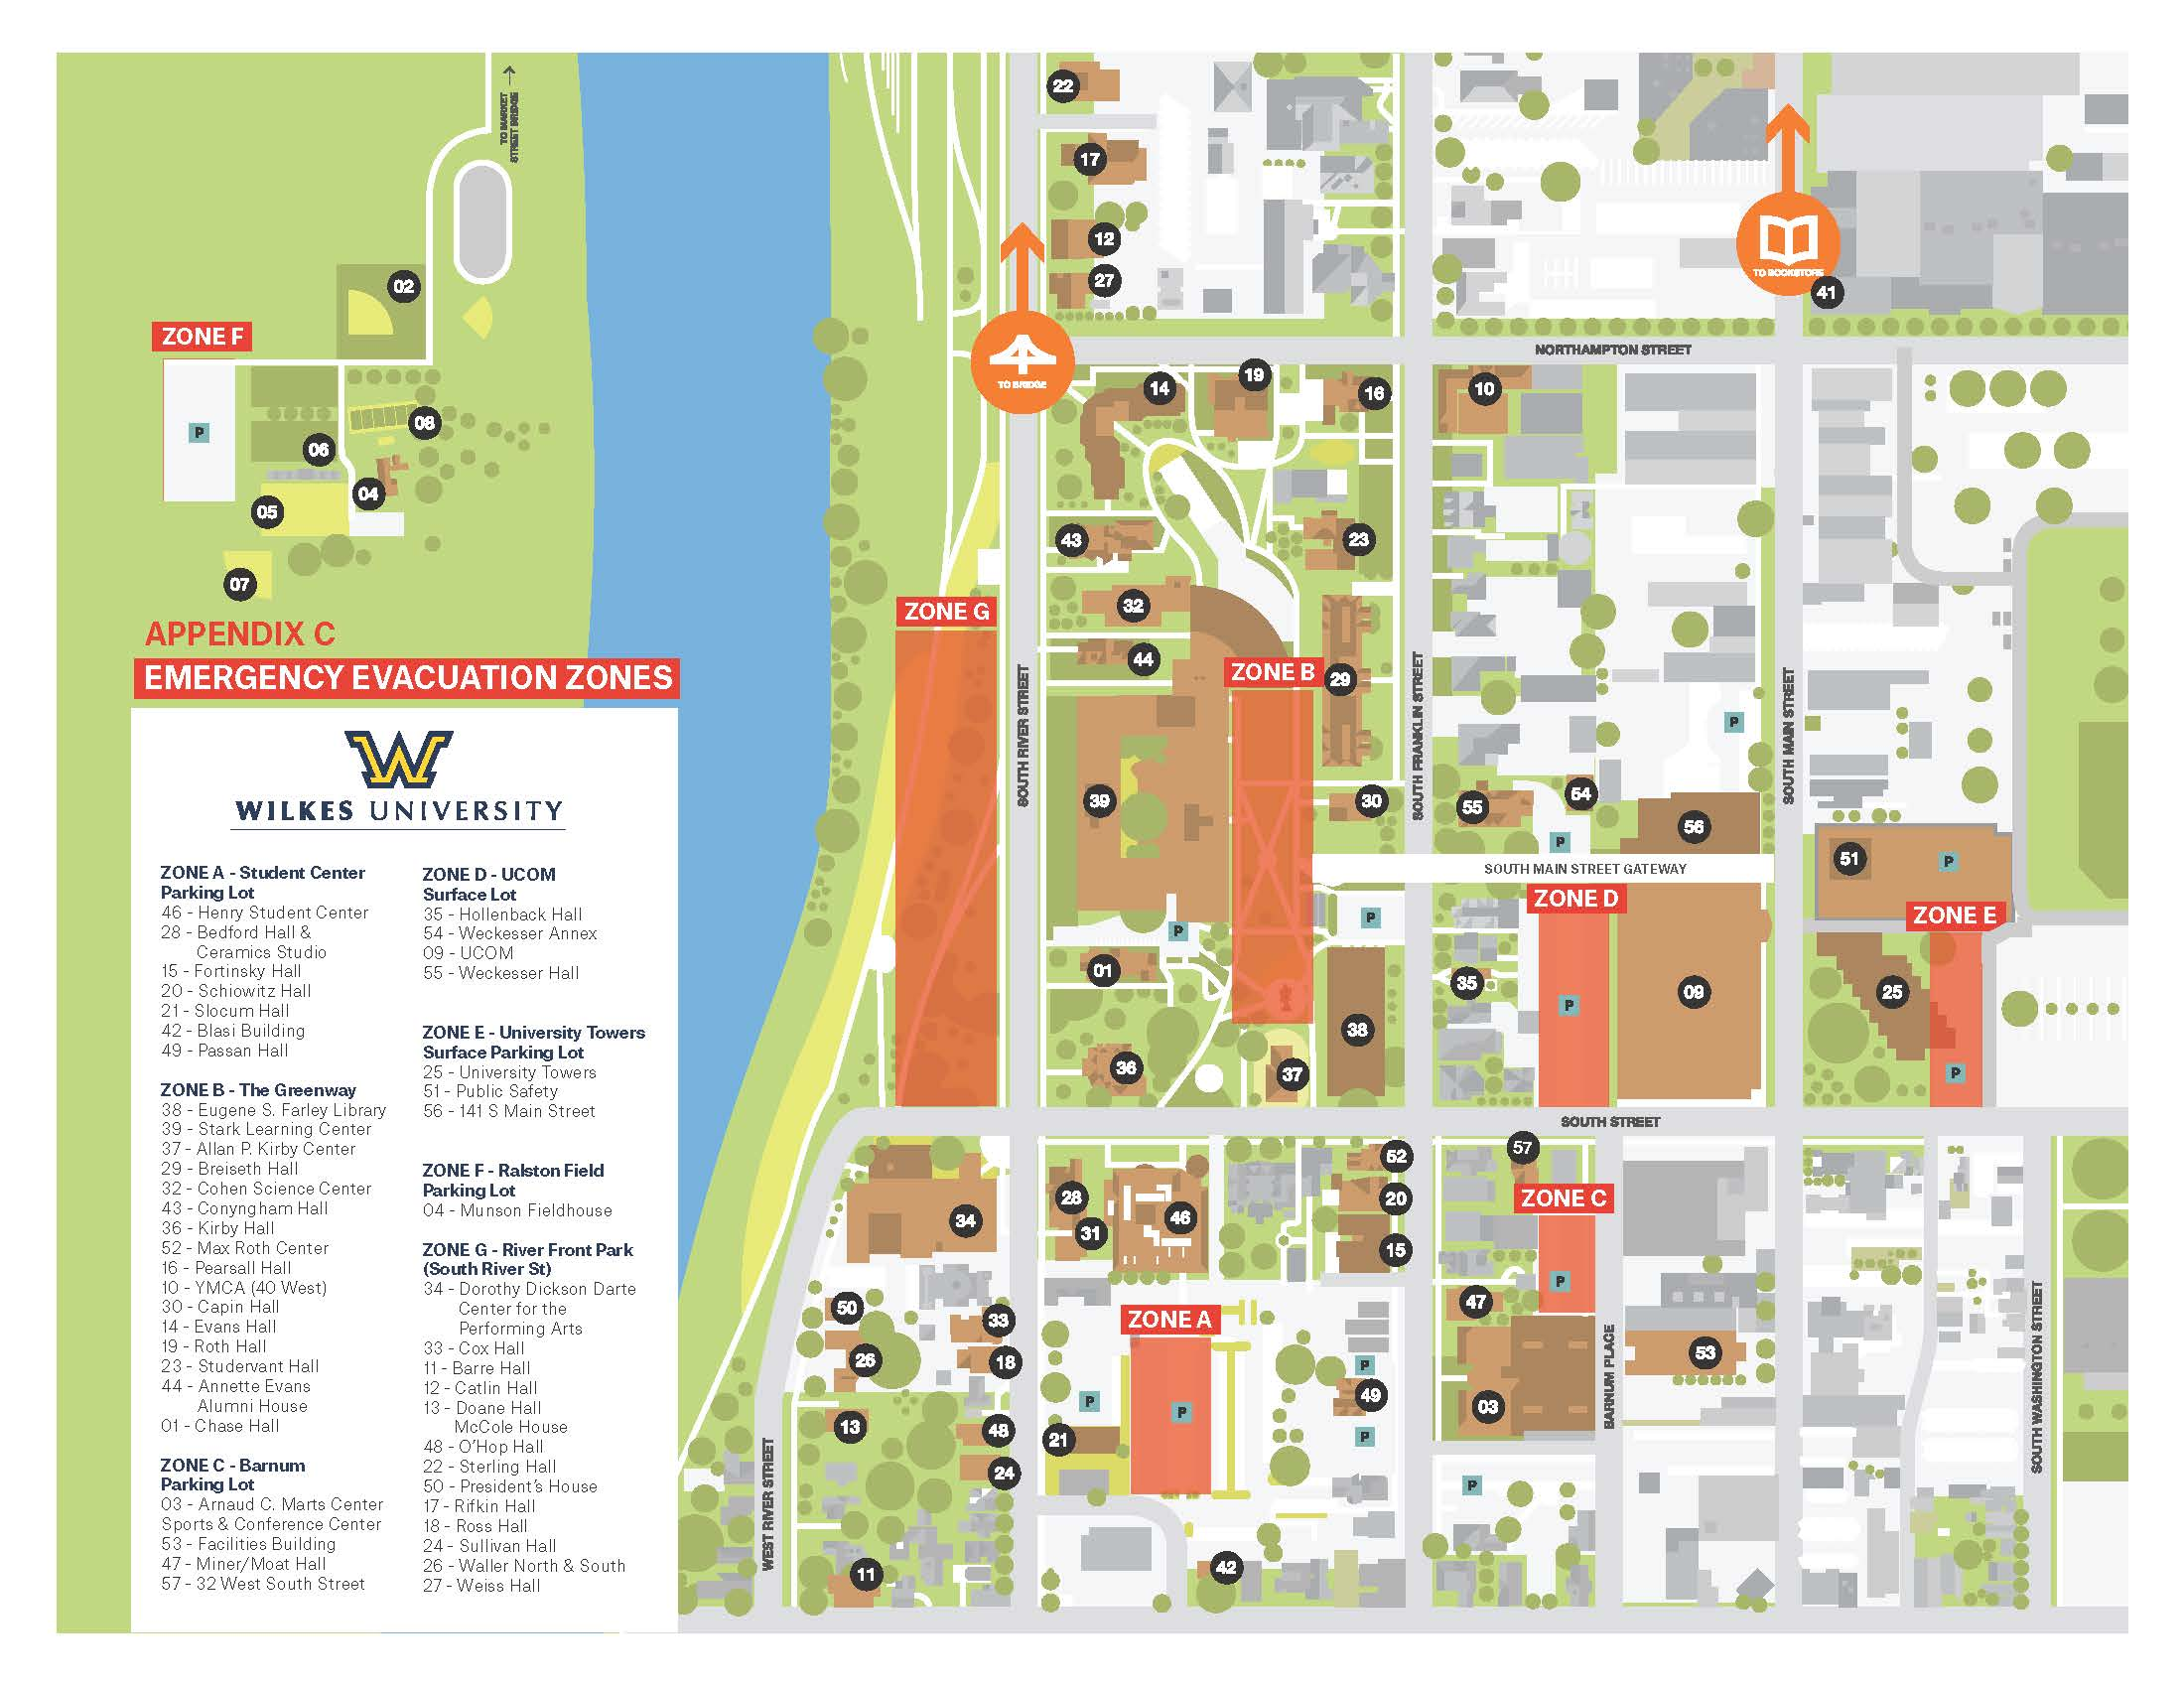 wilkes university campus map Emergency Evacuation Procedures Wilkes University wilkes university campus map